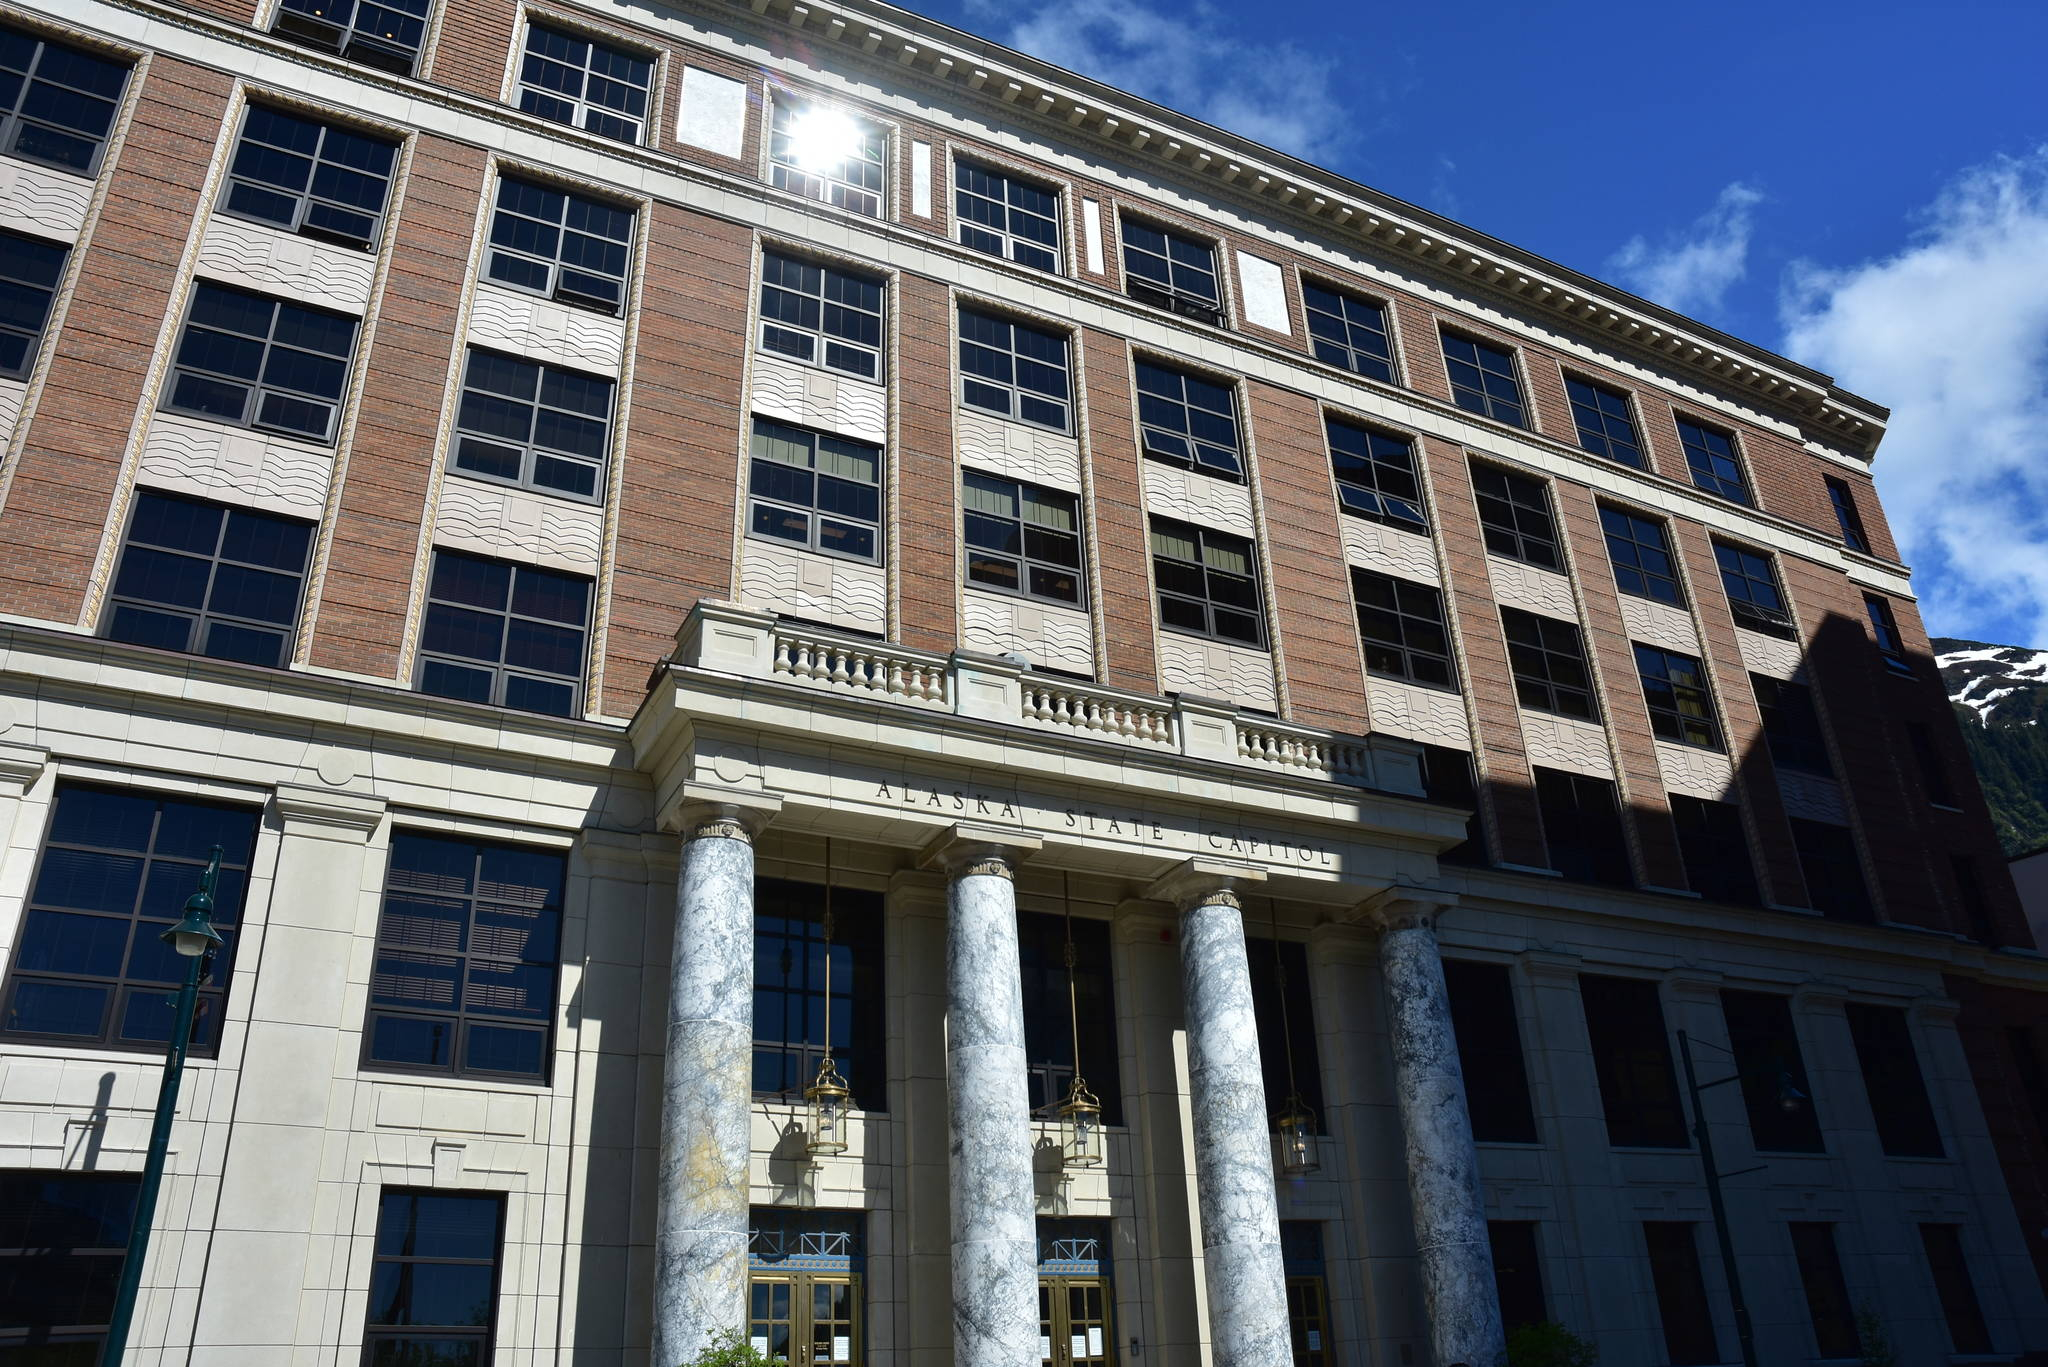 Without a budget to vote on, many lawmakers were absent from the Alaska State Capitol on Monday, June 7, 2021, as negotiations continue in committee. But even the conference committee isn't scheduled until later in the week as deep divisions among lawmakers remain. (Peter Segall / Juneau Empire)